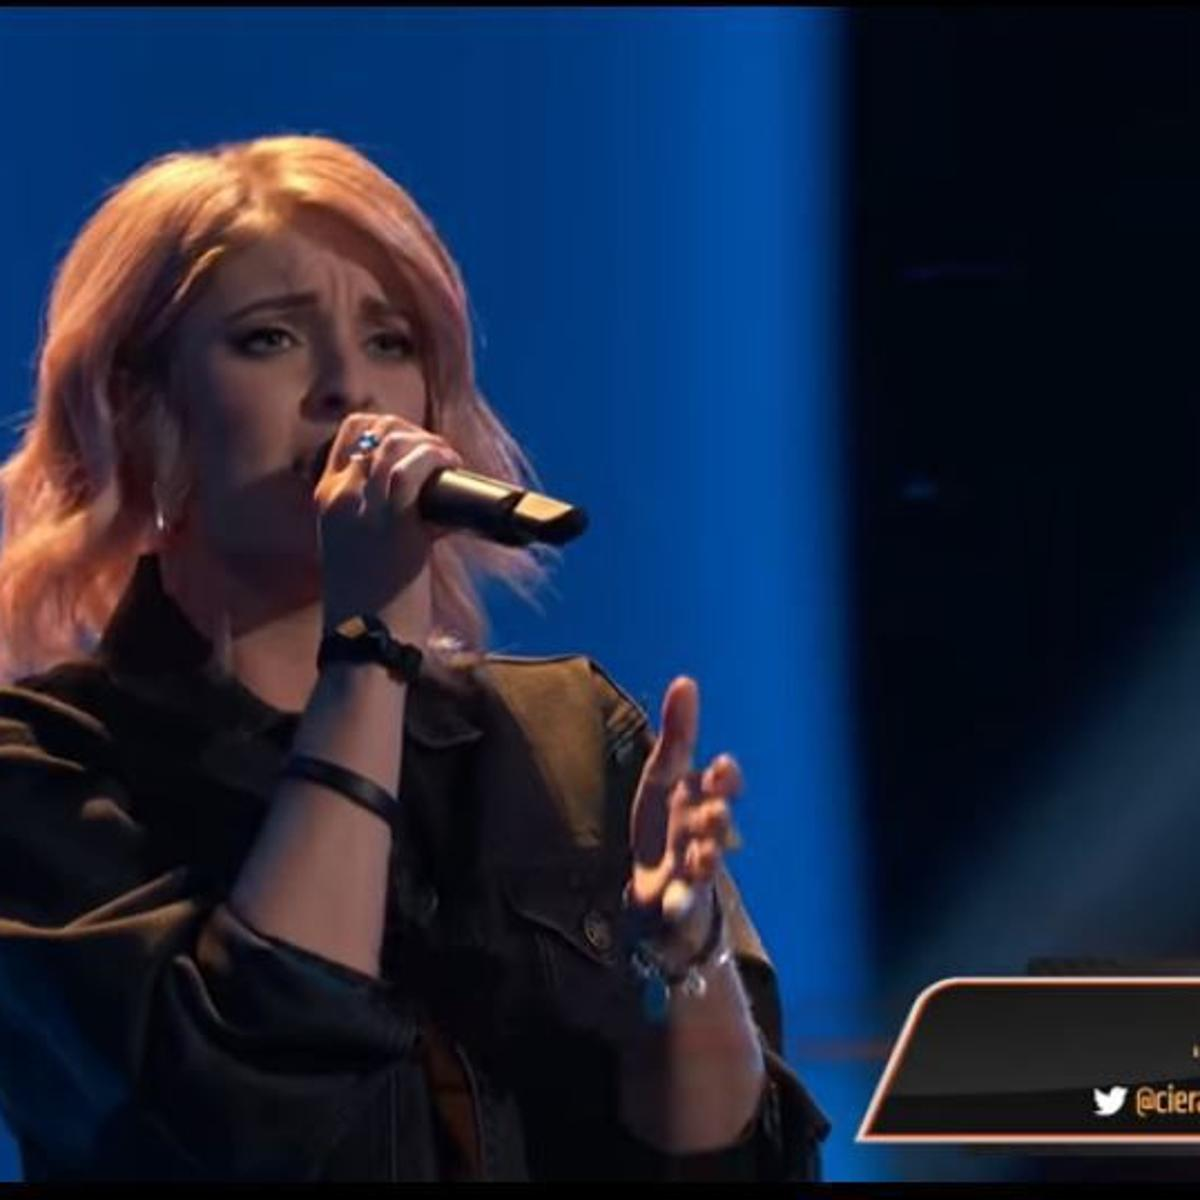 21-year-old Kernersville singer makes it onto 'The Voice